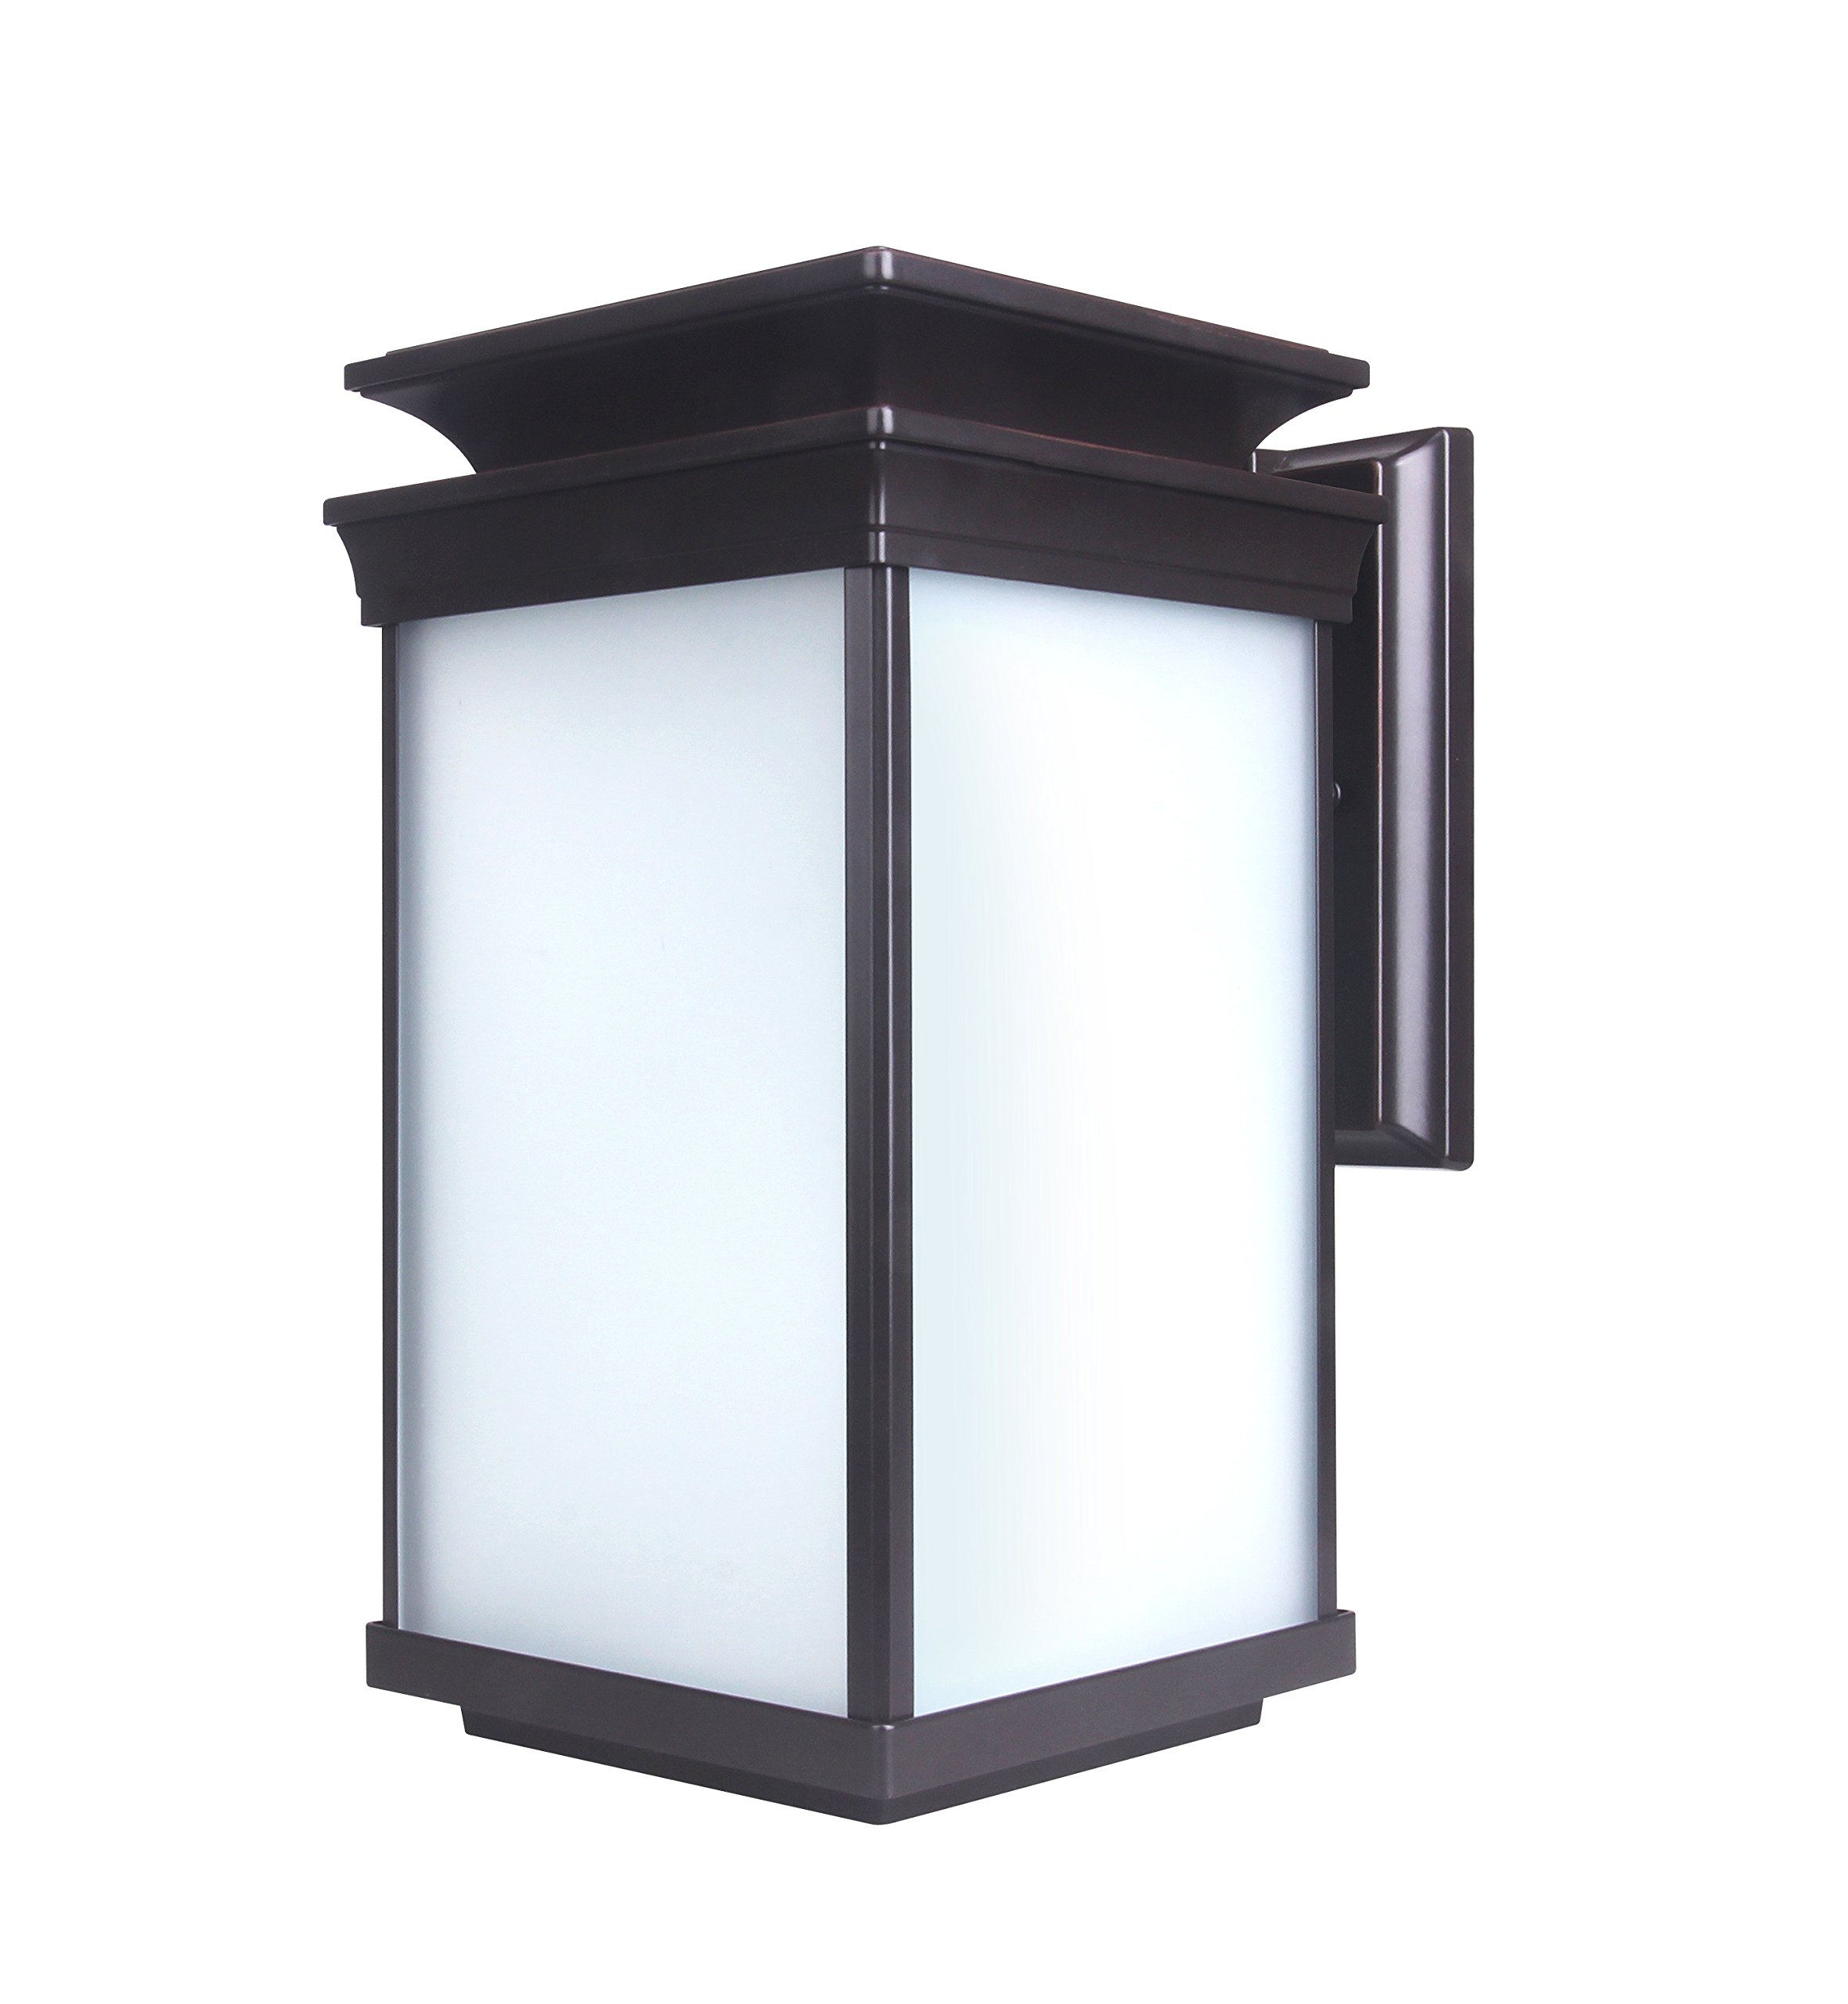 CORAMDEO Outdoor LED Wall Lantern, Wall Sconce as Porch Light Fixture, 12.5W, 1000 Lumen, Water-Proof, Aluminum Housing Plus Glass, ETL and Energy Star Rated